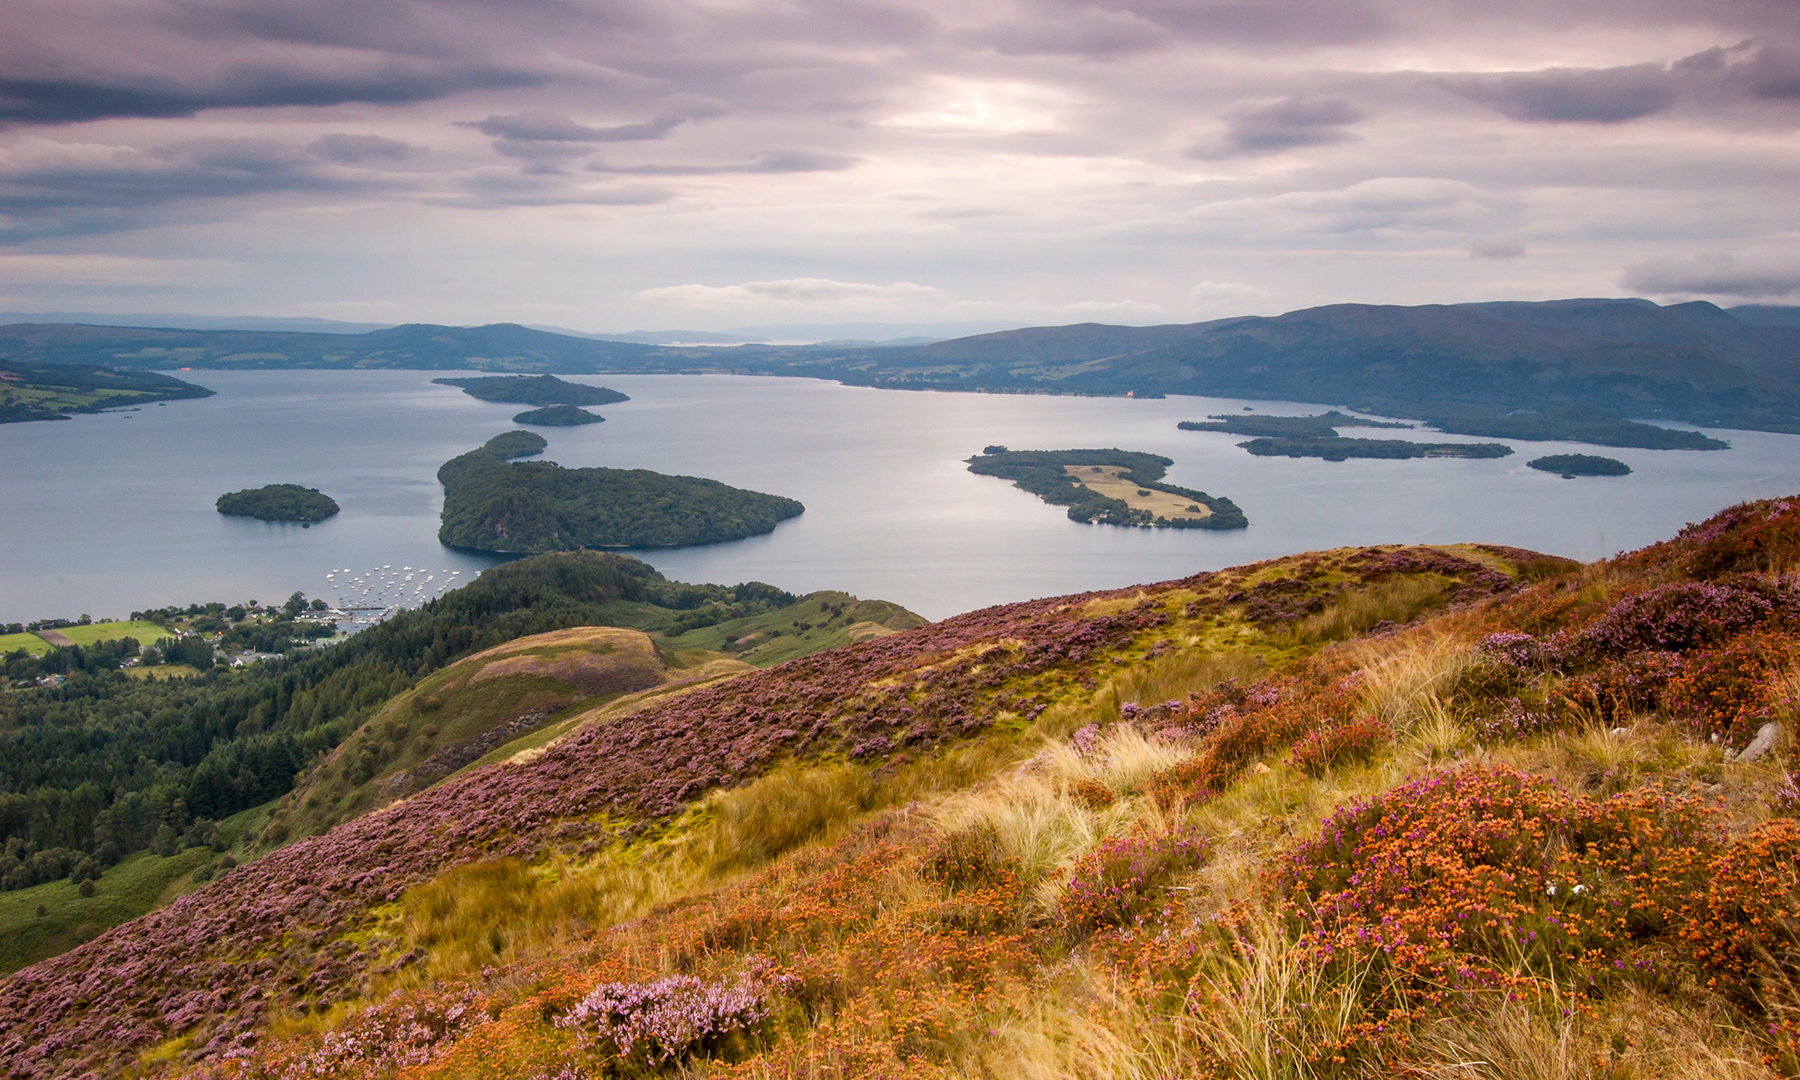 Conic Hill over looking Loch Lomond, Highland Boundary Fault line